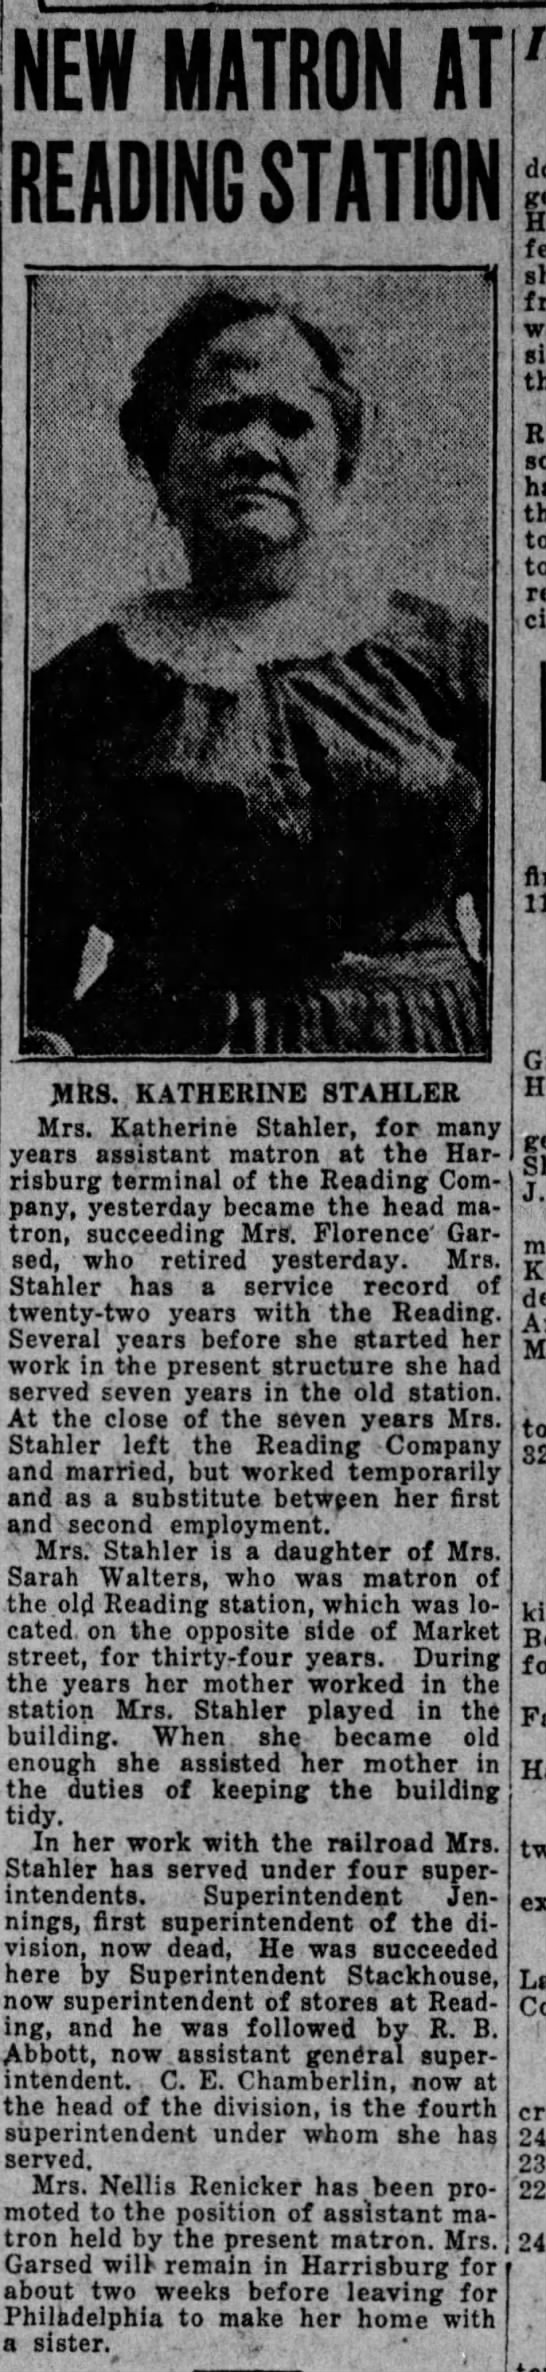 the evening news harrisburg sep 2 1926 katharine stahler -